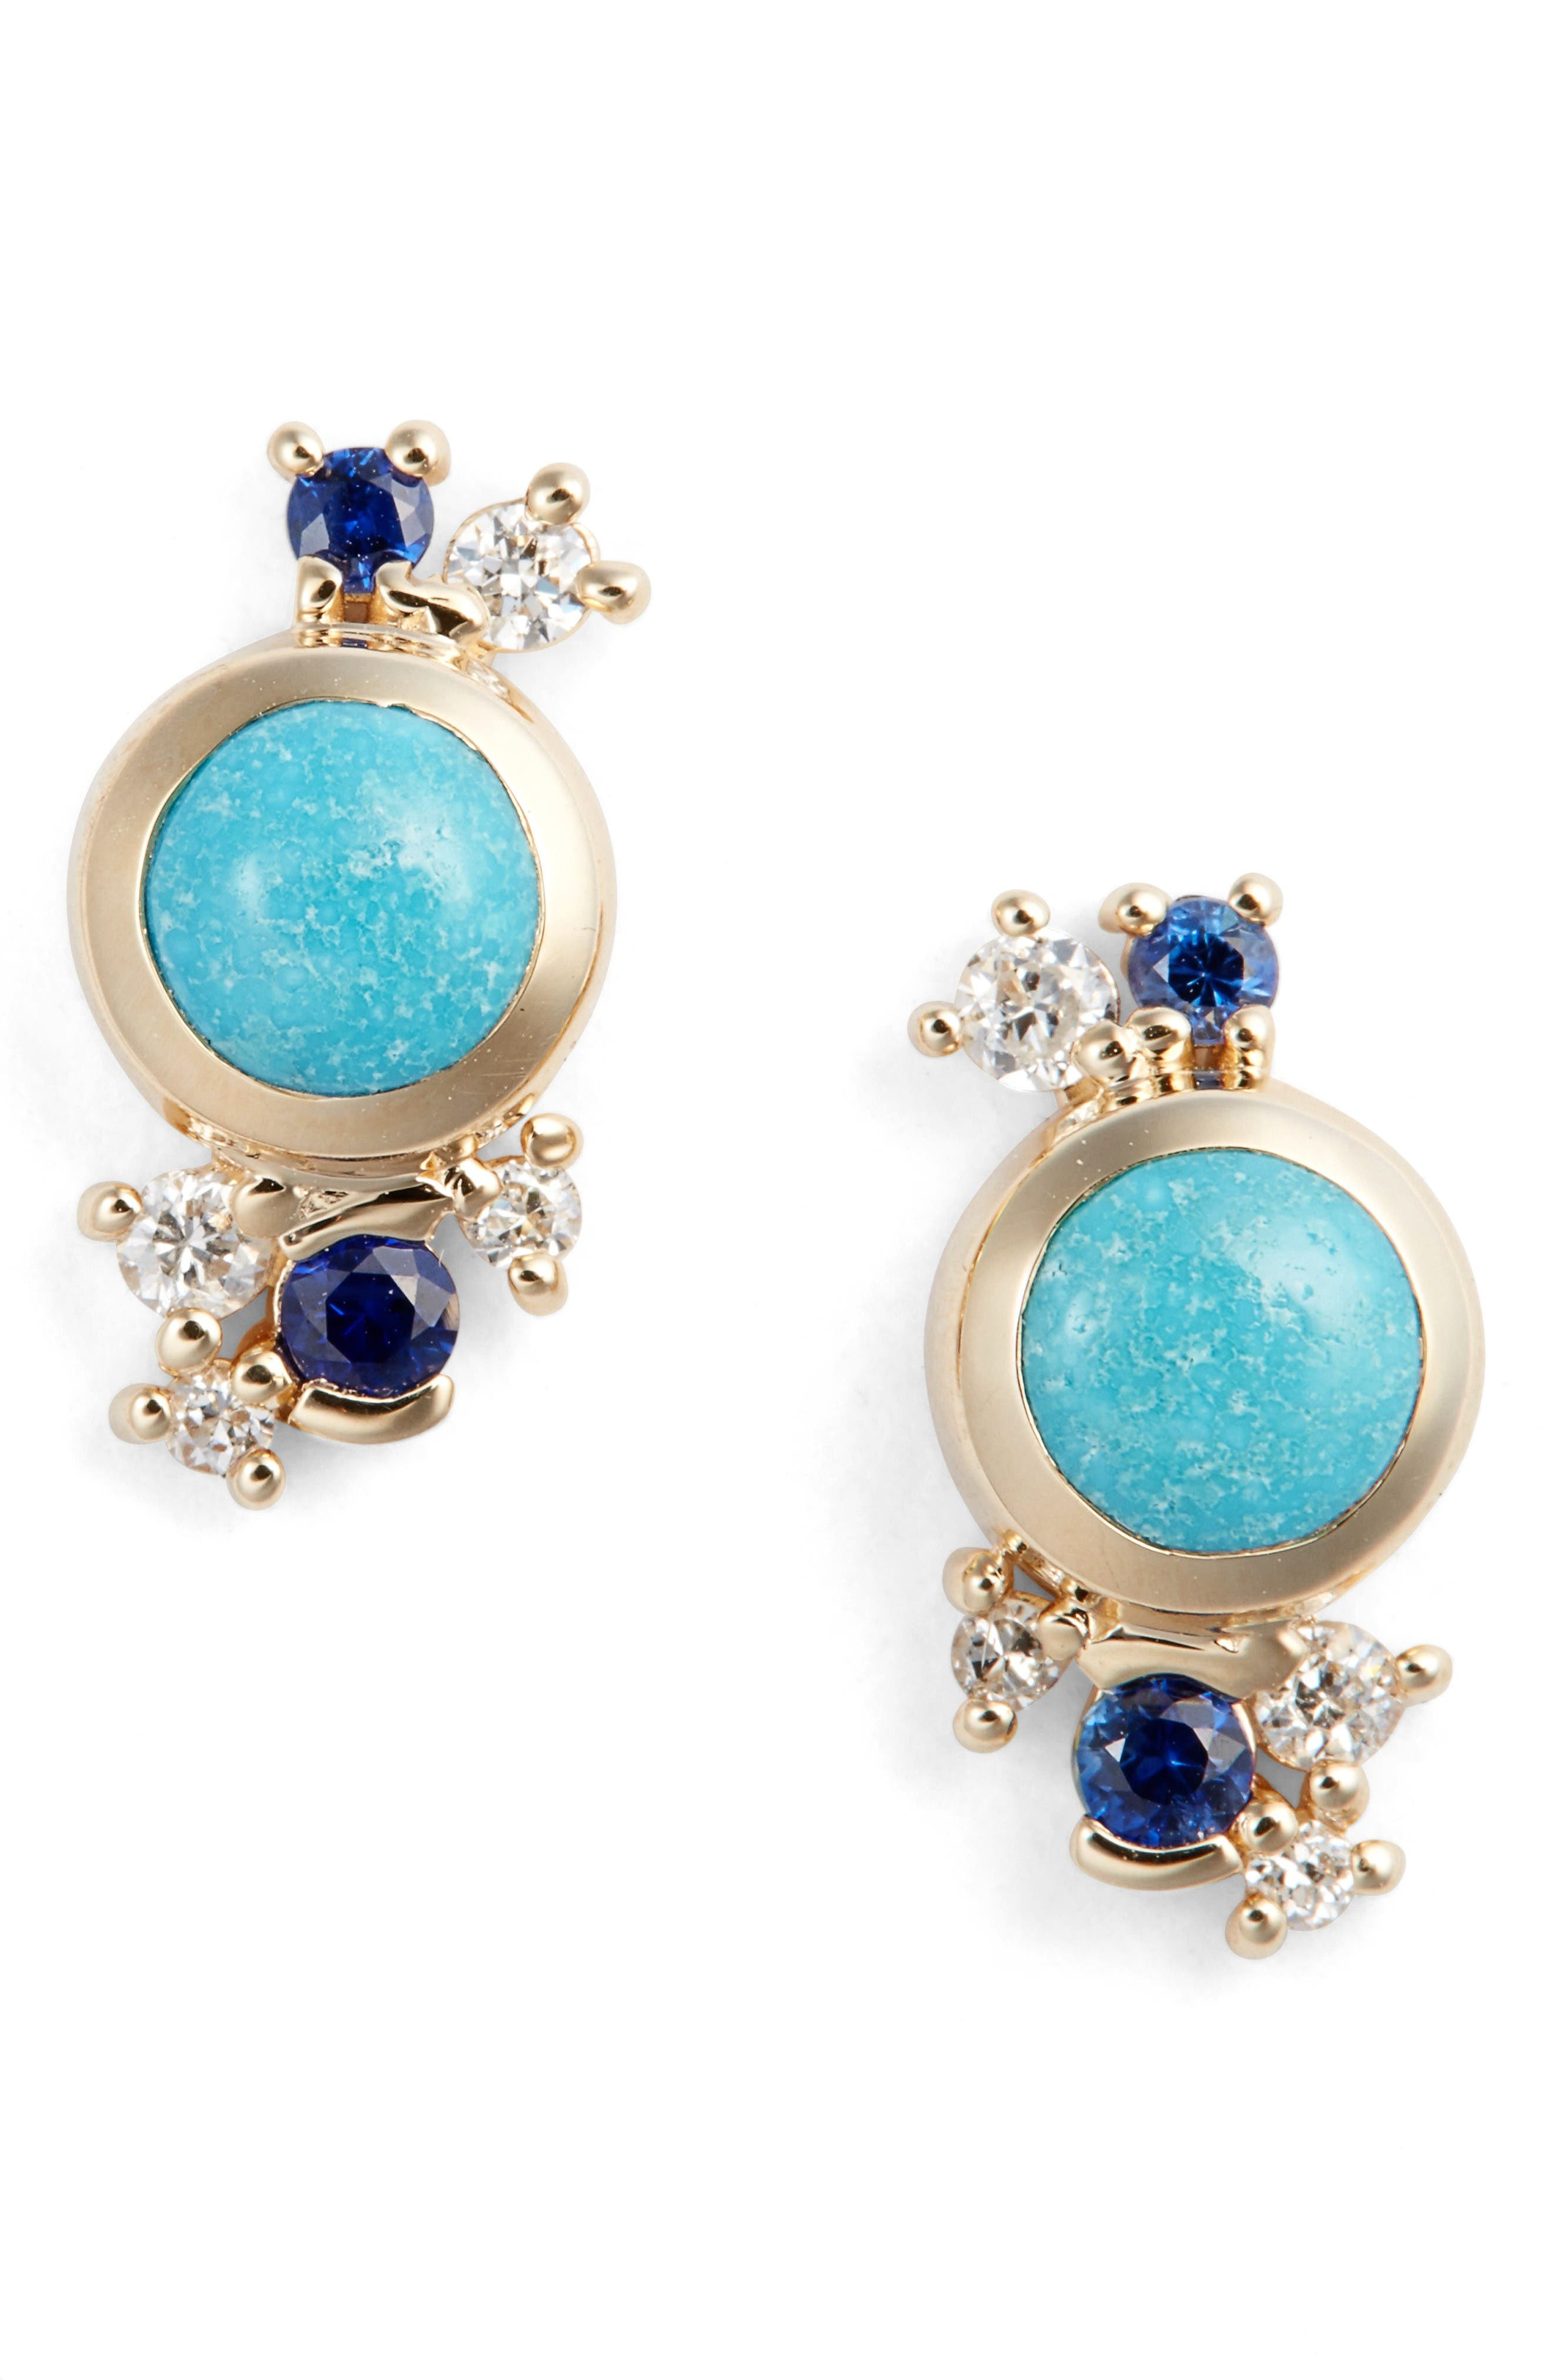 MOCIUN Turquoise, Sapphire & Diamond Earrings (Nordstrom Exclusive)